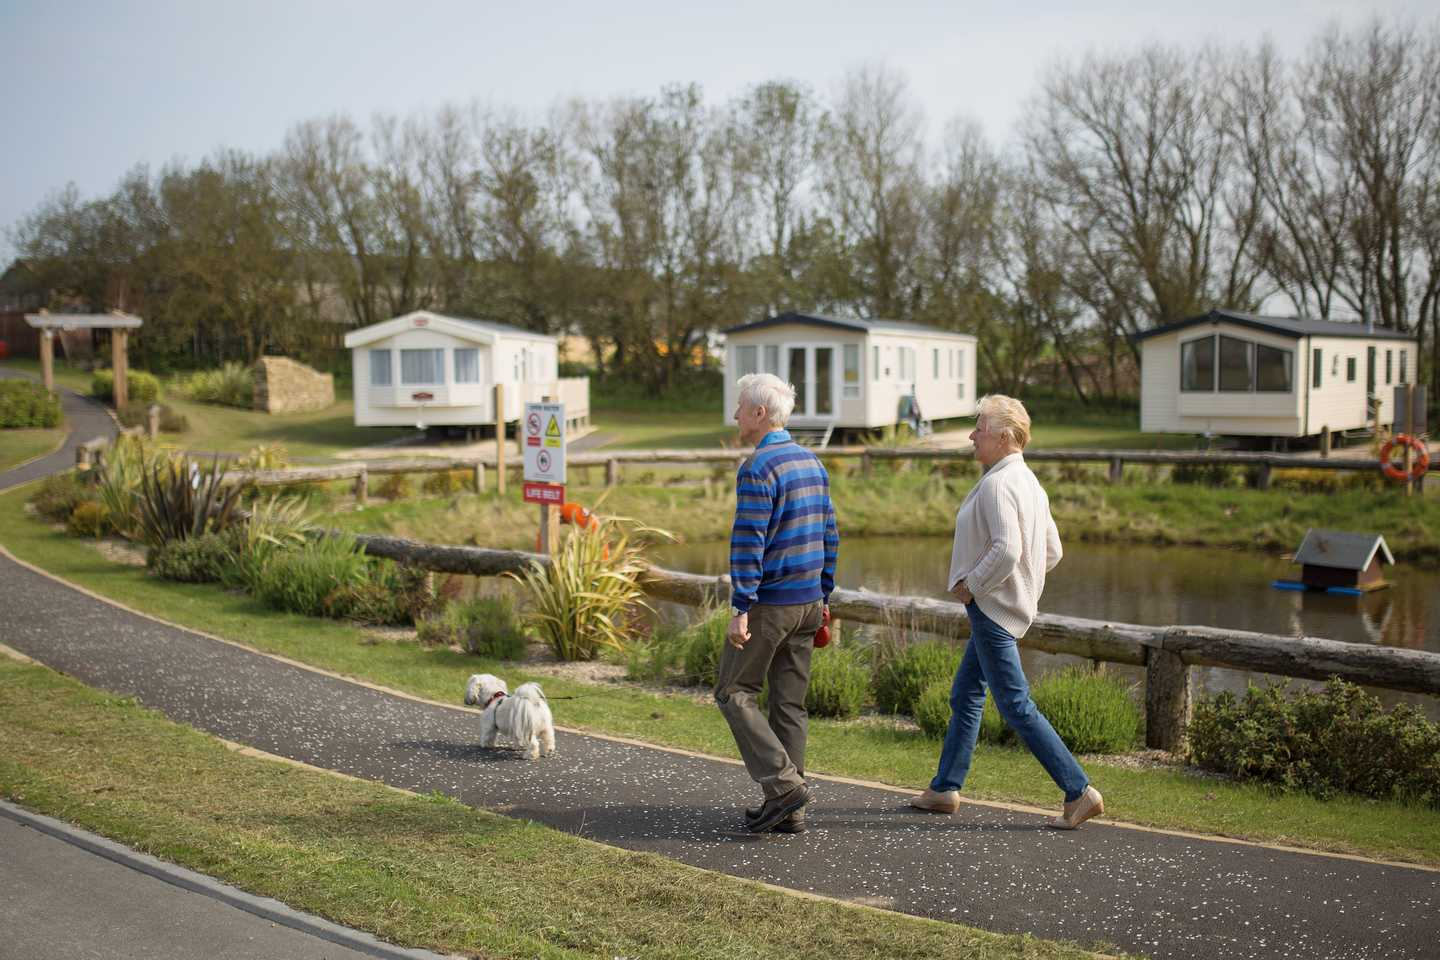 Caravan owners walking through the park at Blue Dolphin